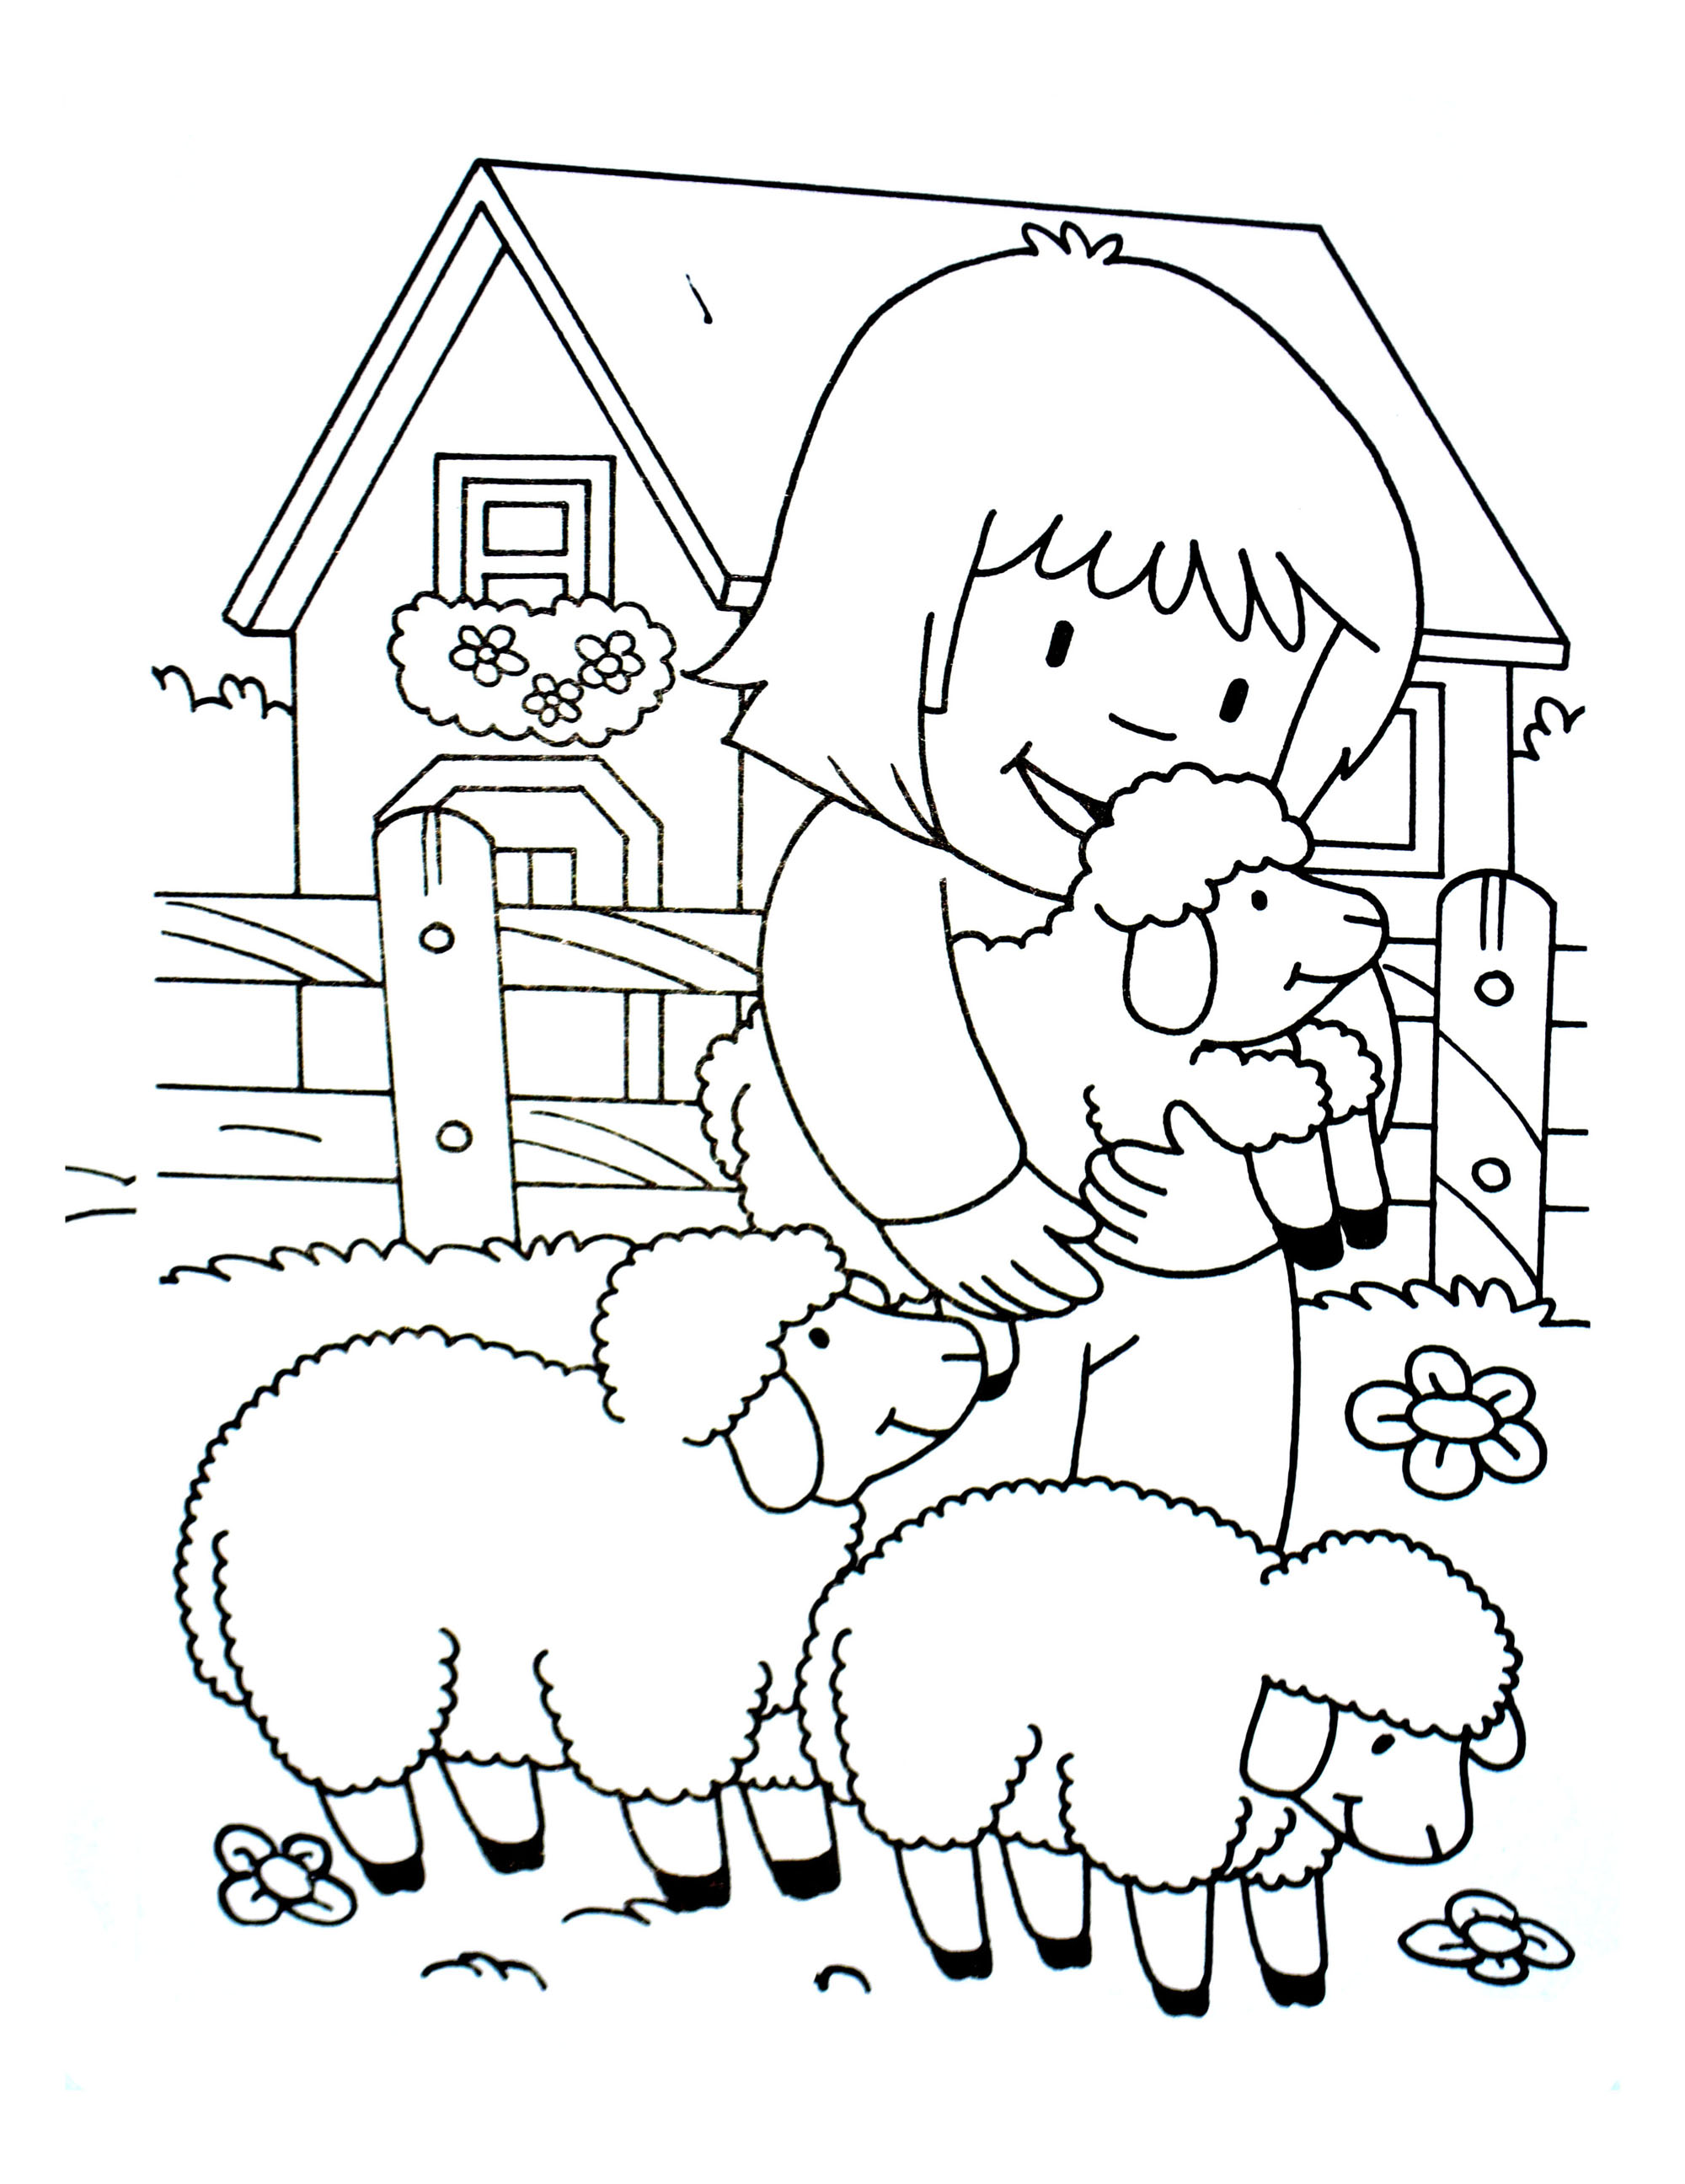 Simple Farm coloring page for children